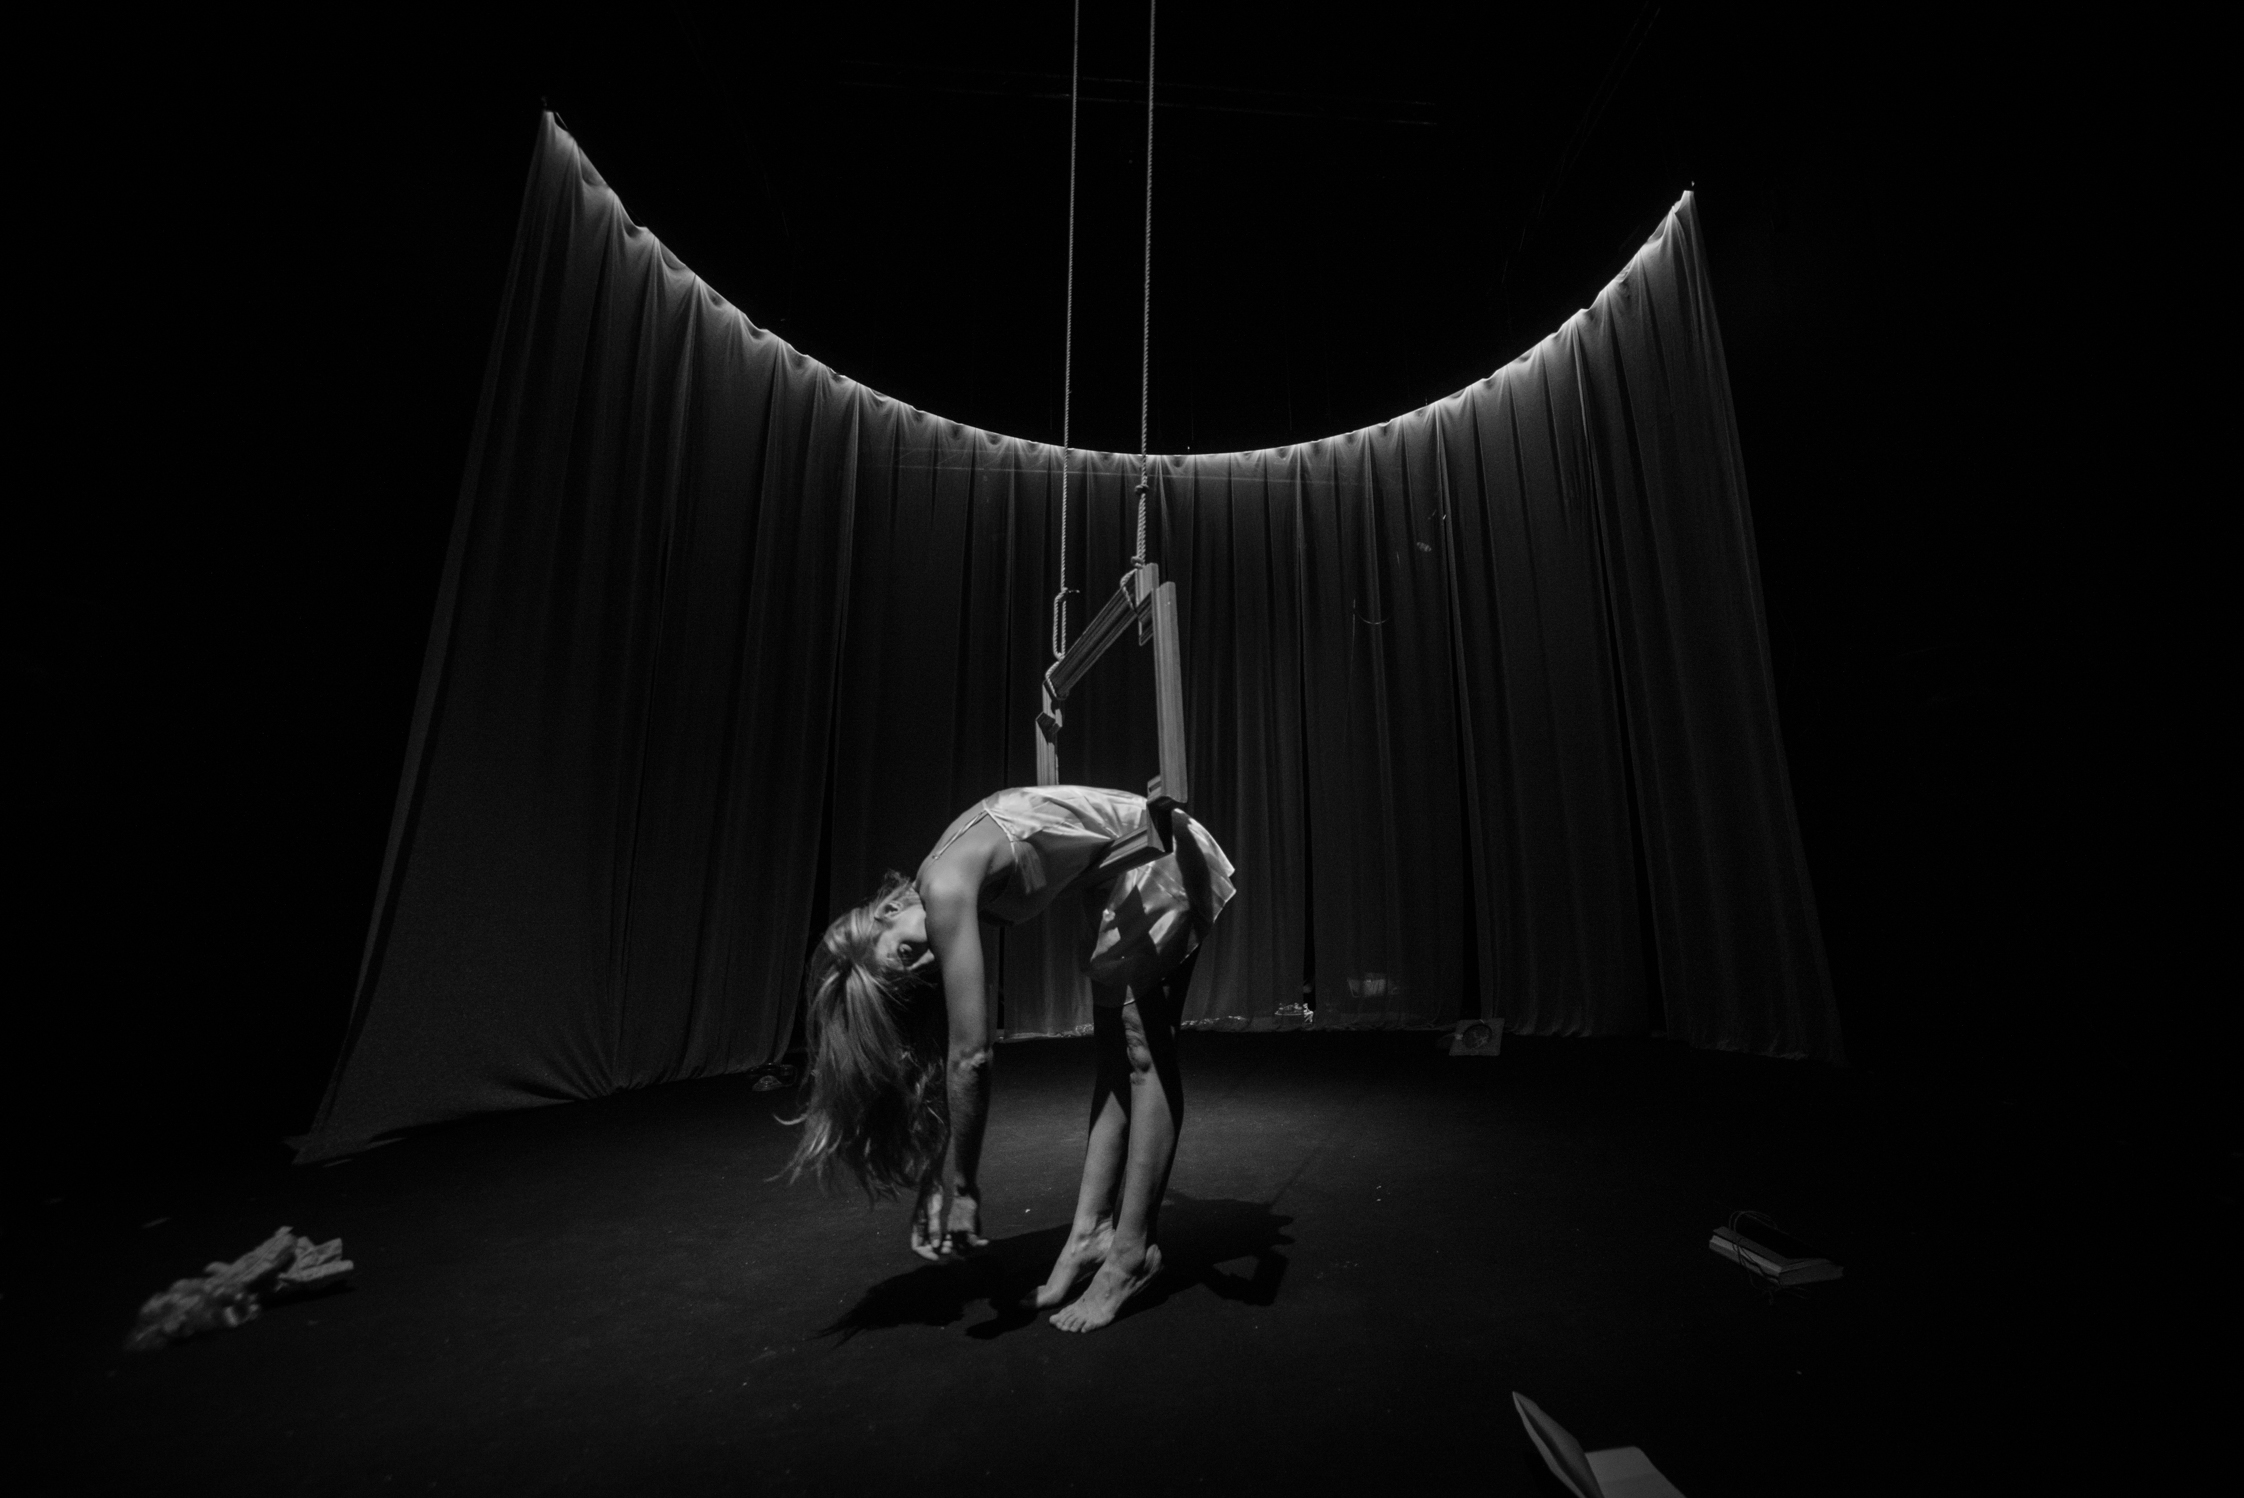 12_norma_jeane_hanging_stage_41DOM_3379.jpg